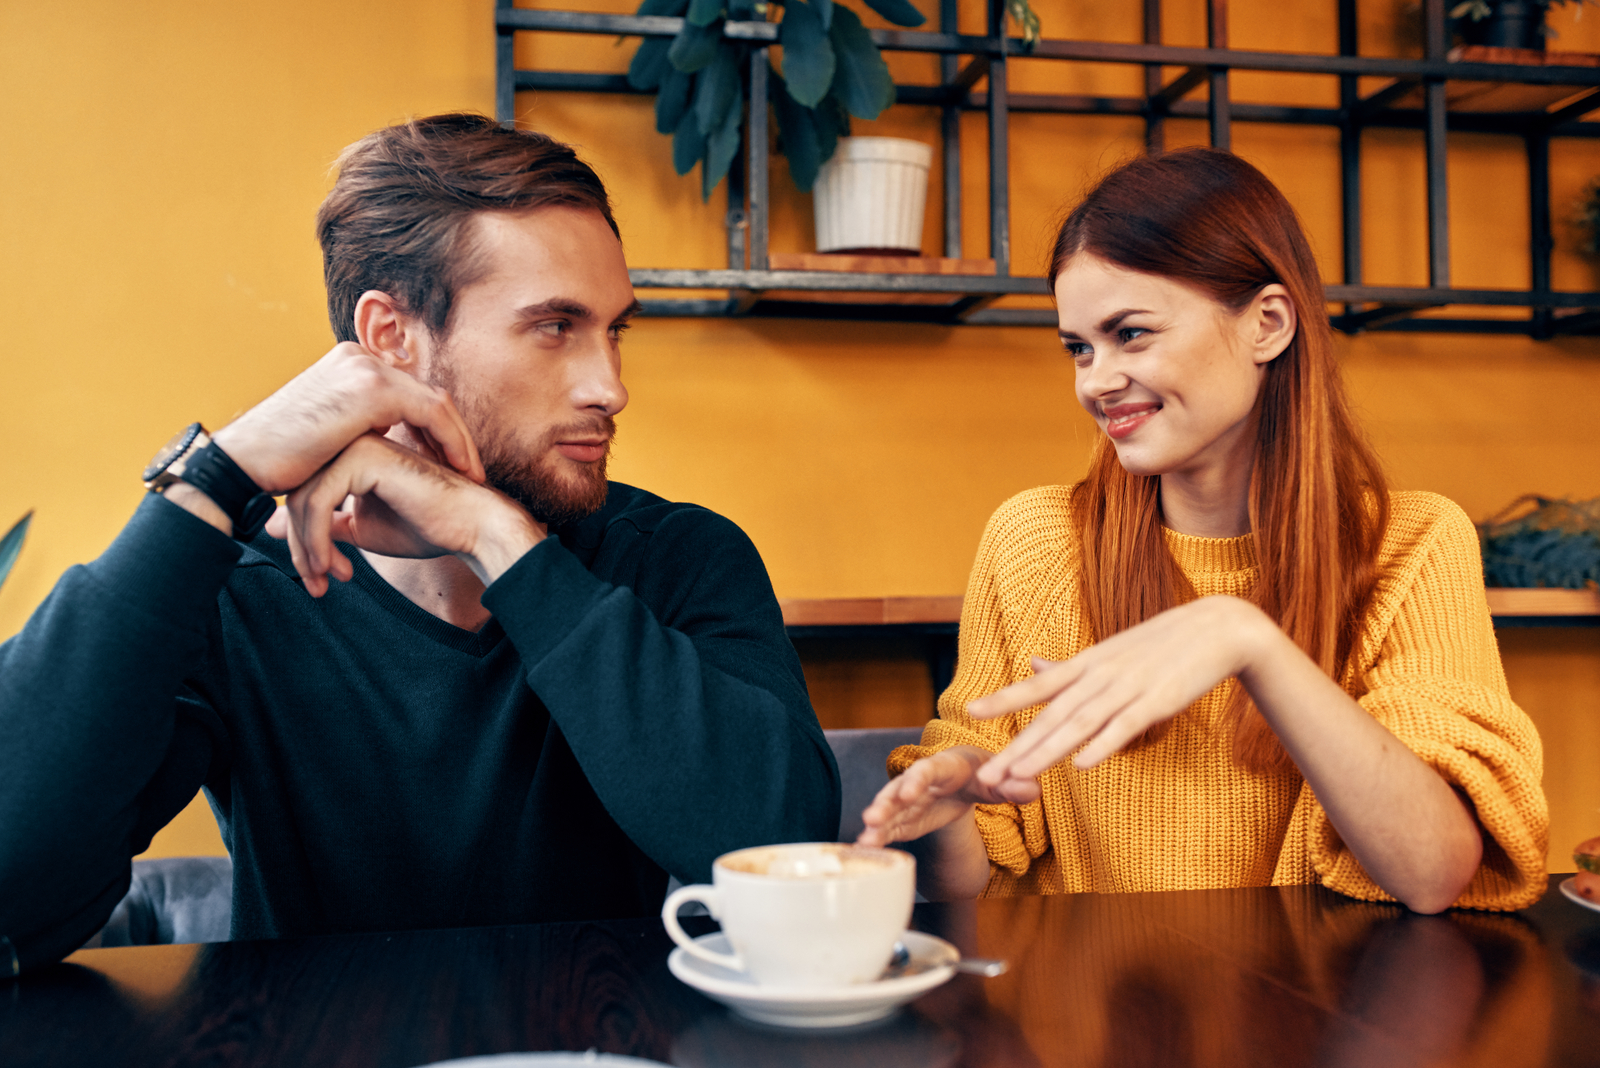 a man and a woman sitting at a table having coffee talking